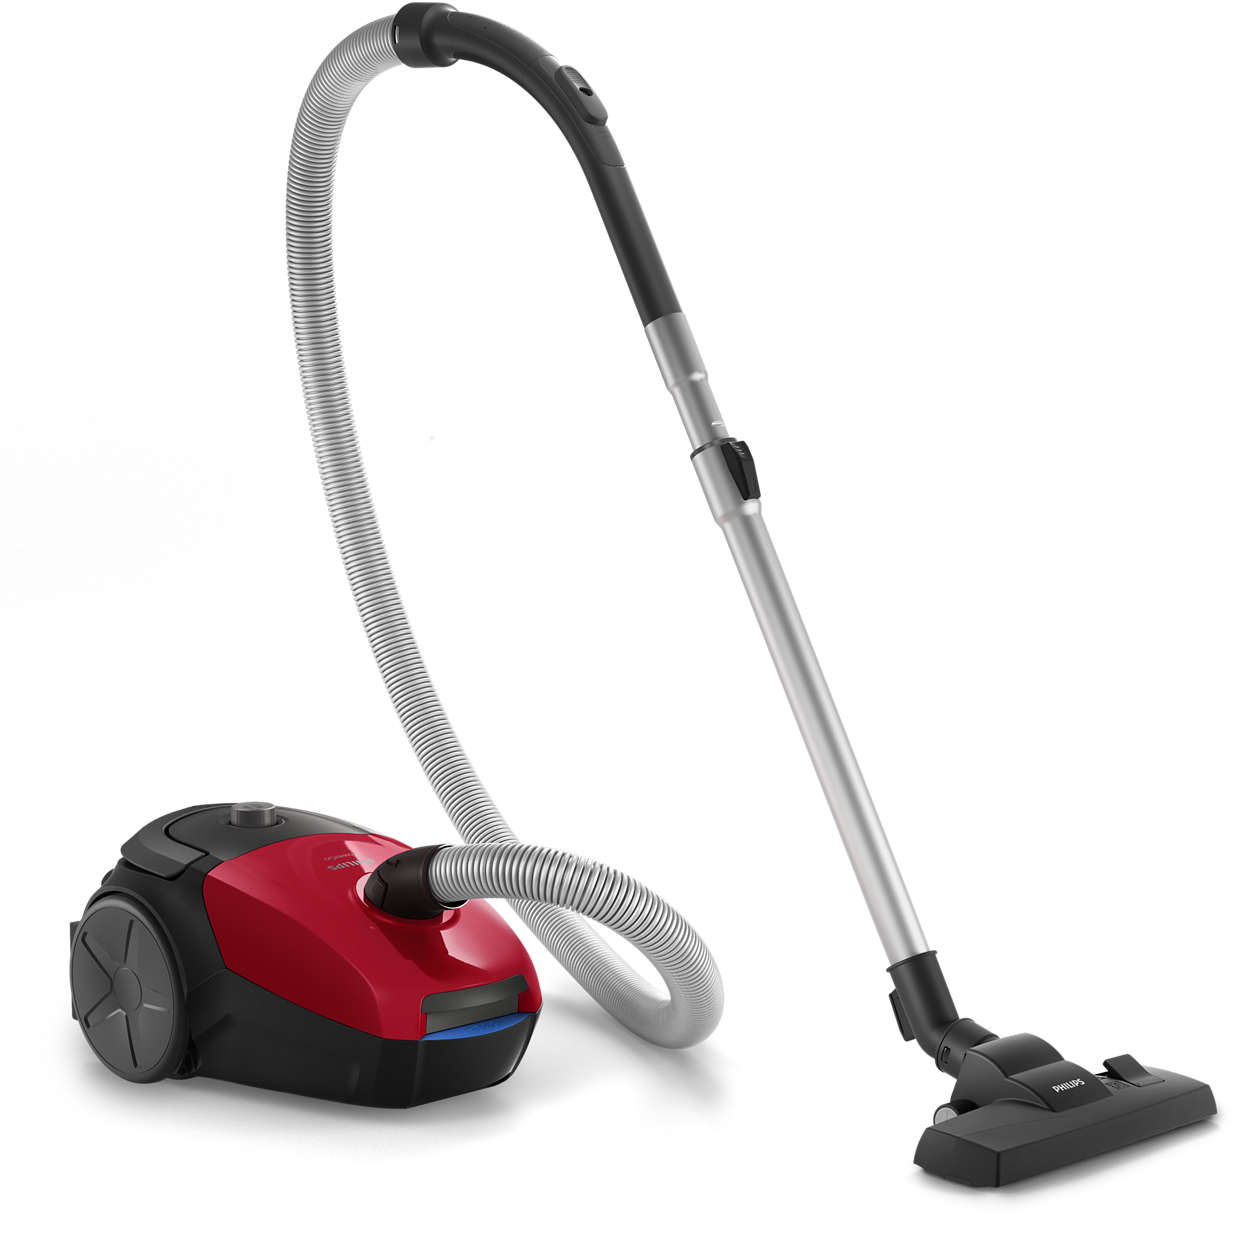 Image result for Vacuum